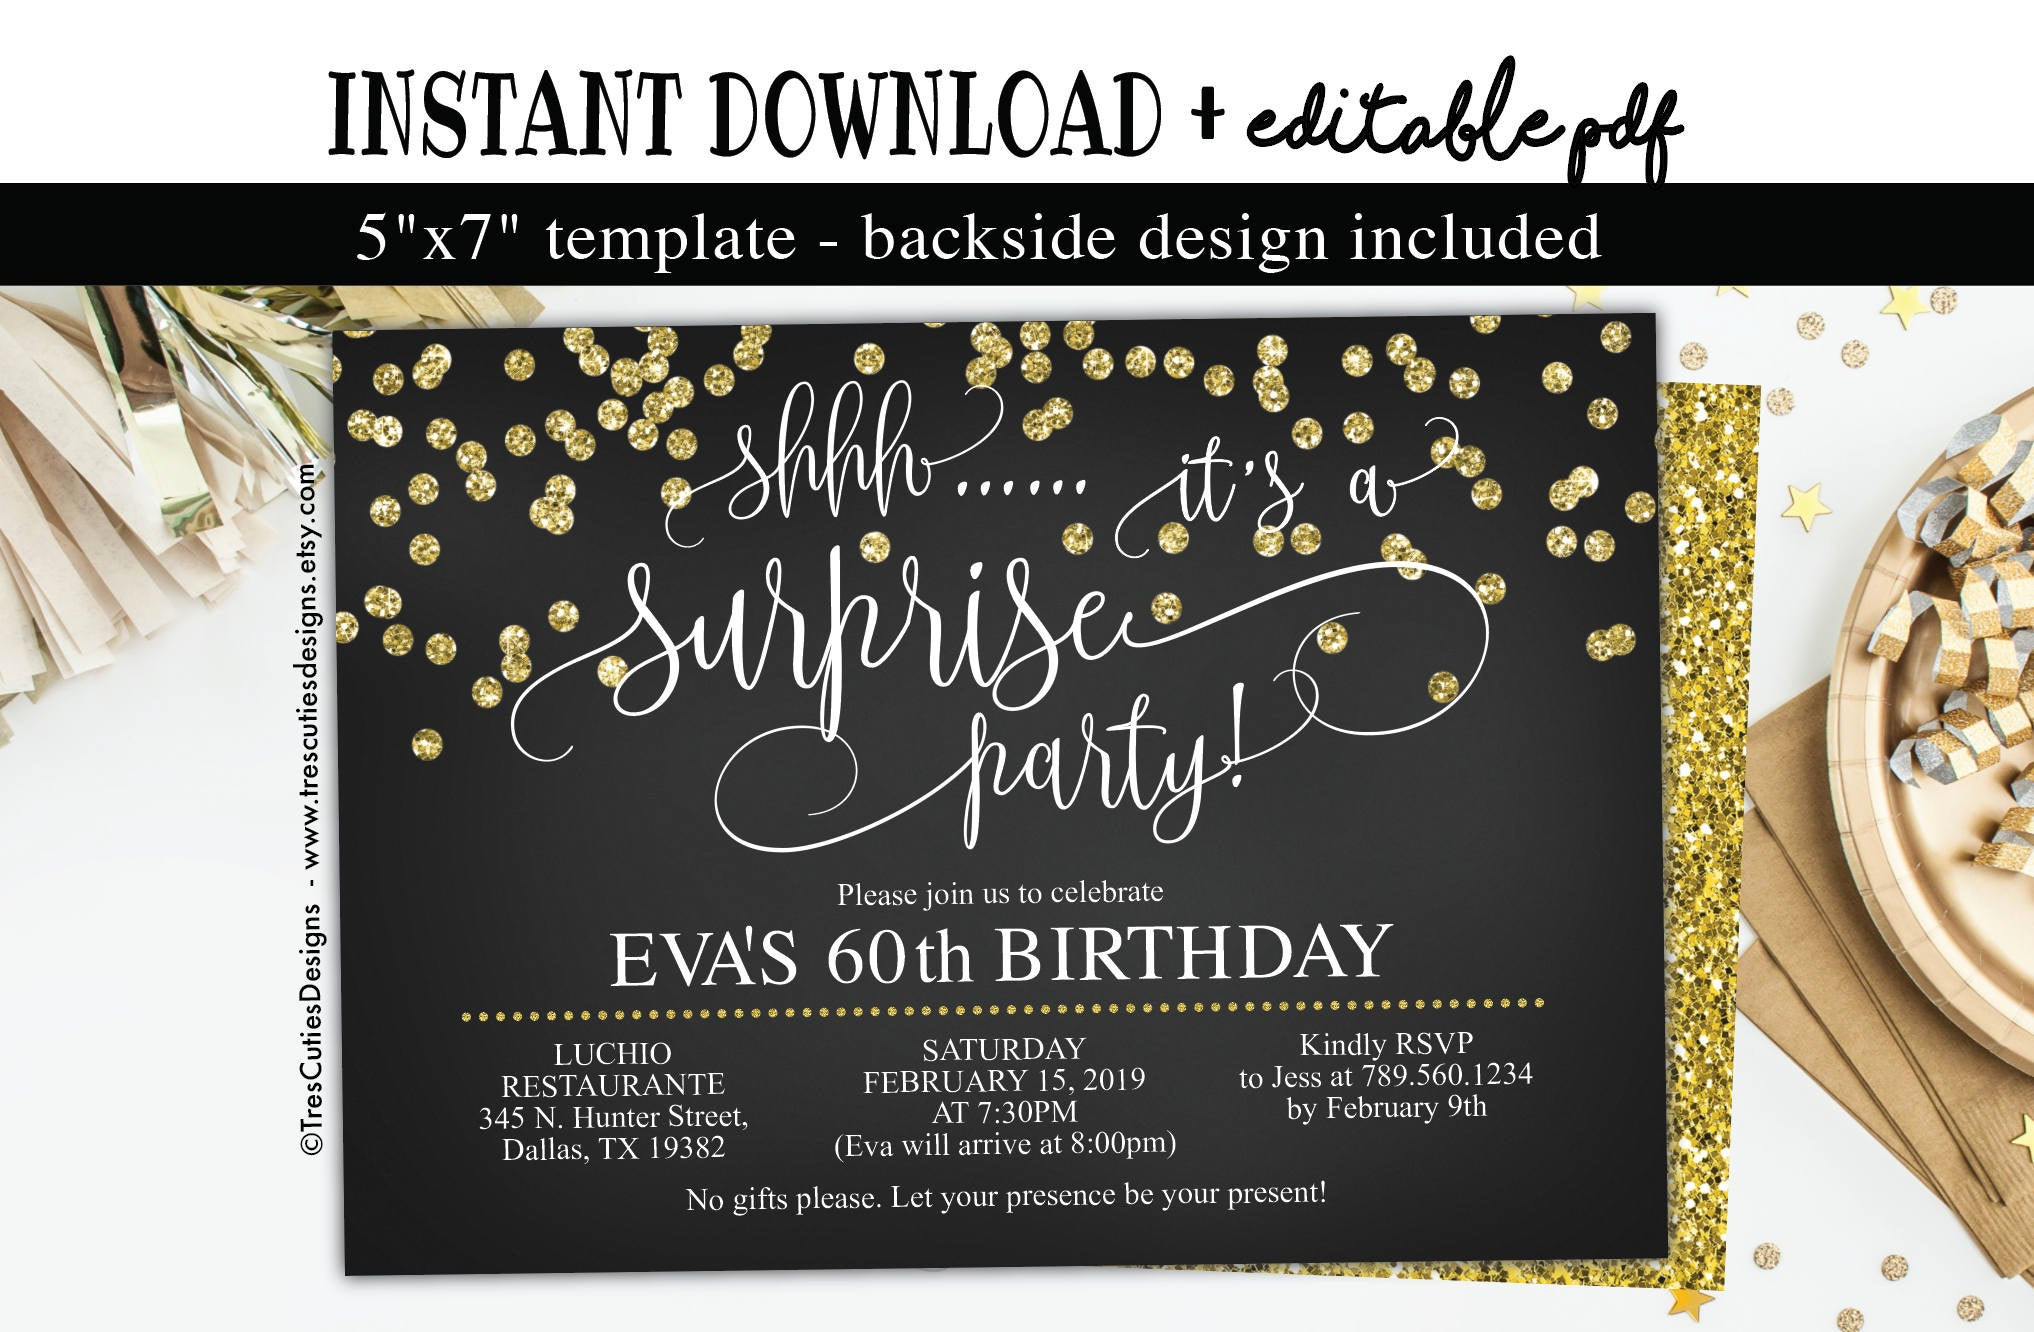 Best ideas about 60th Birthday Invitations . Save or Pin Surprise birthday invitation 60th birthday Party Black Now.